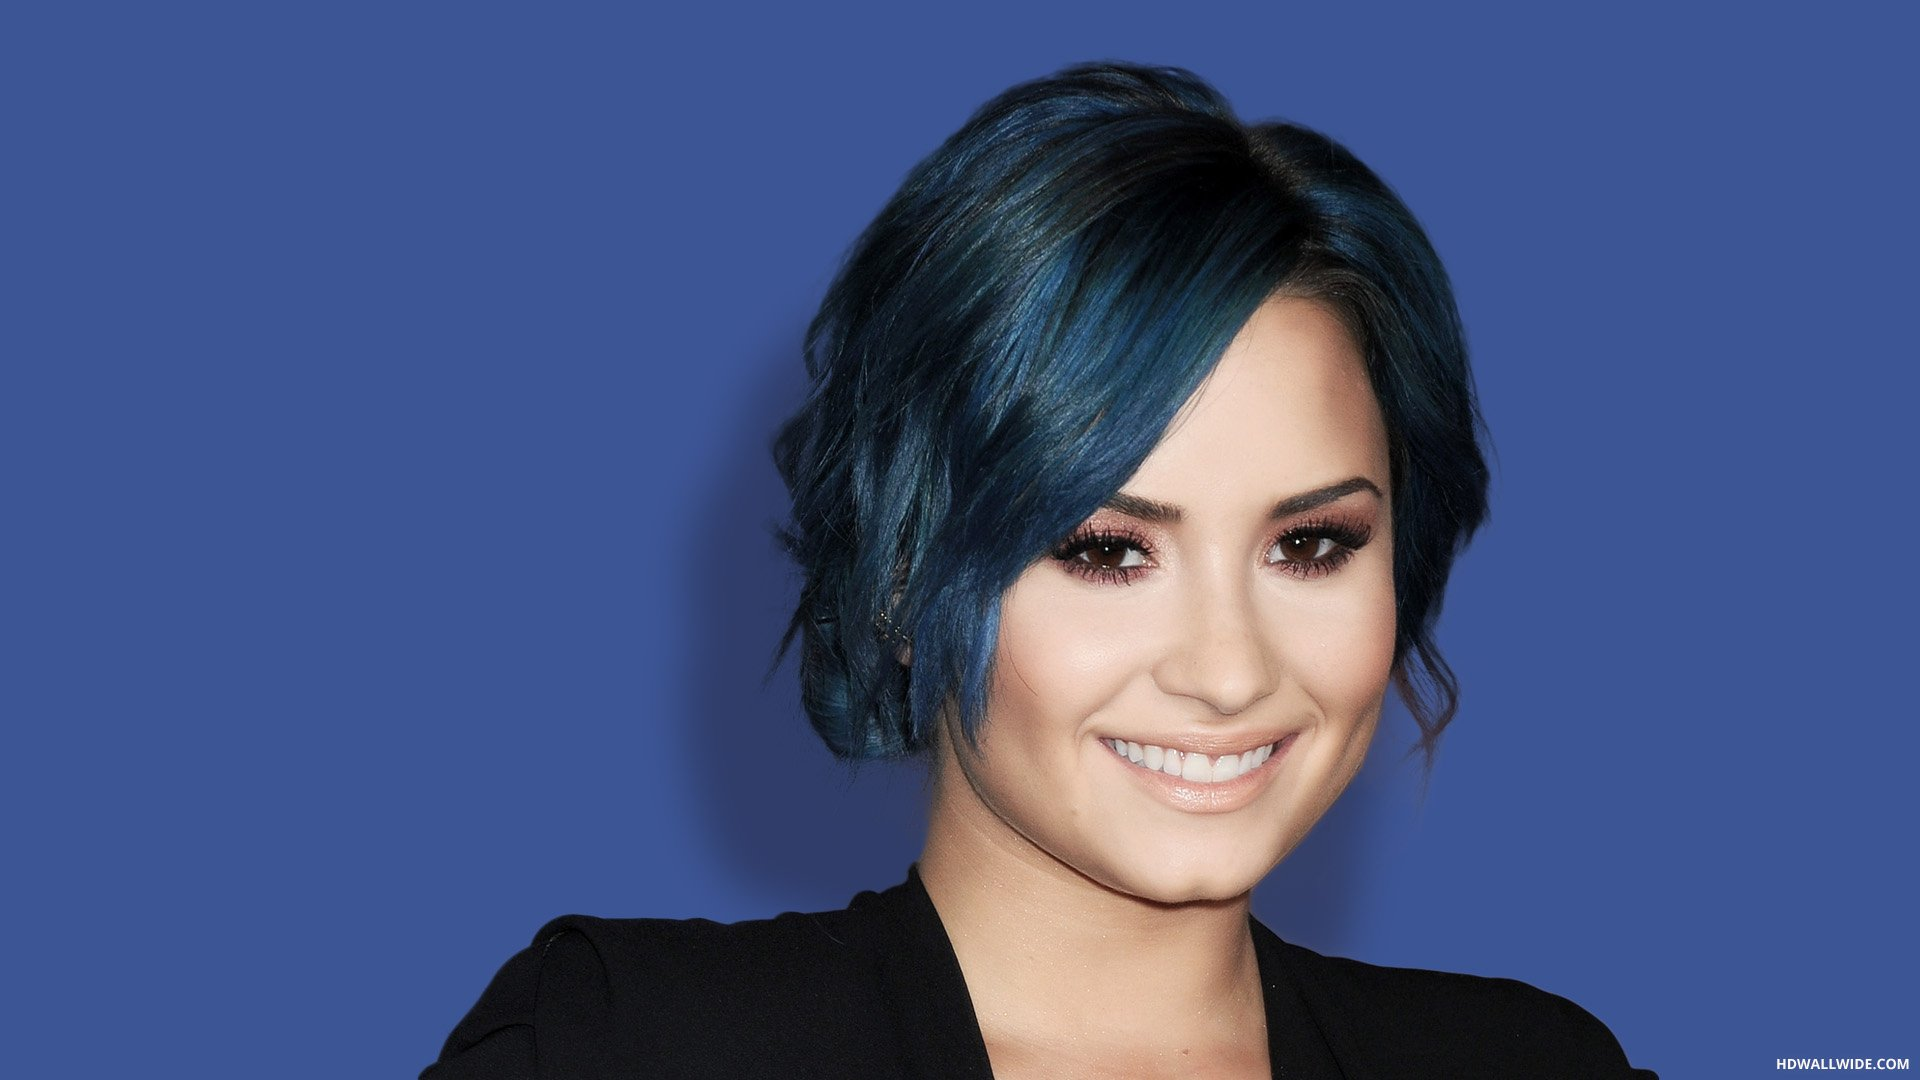 Demi Lovato HD Wallpapers 1080p Blue Upload at October 20 2015 1920x1080